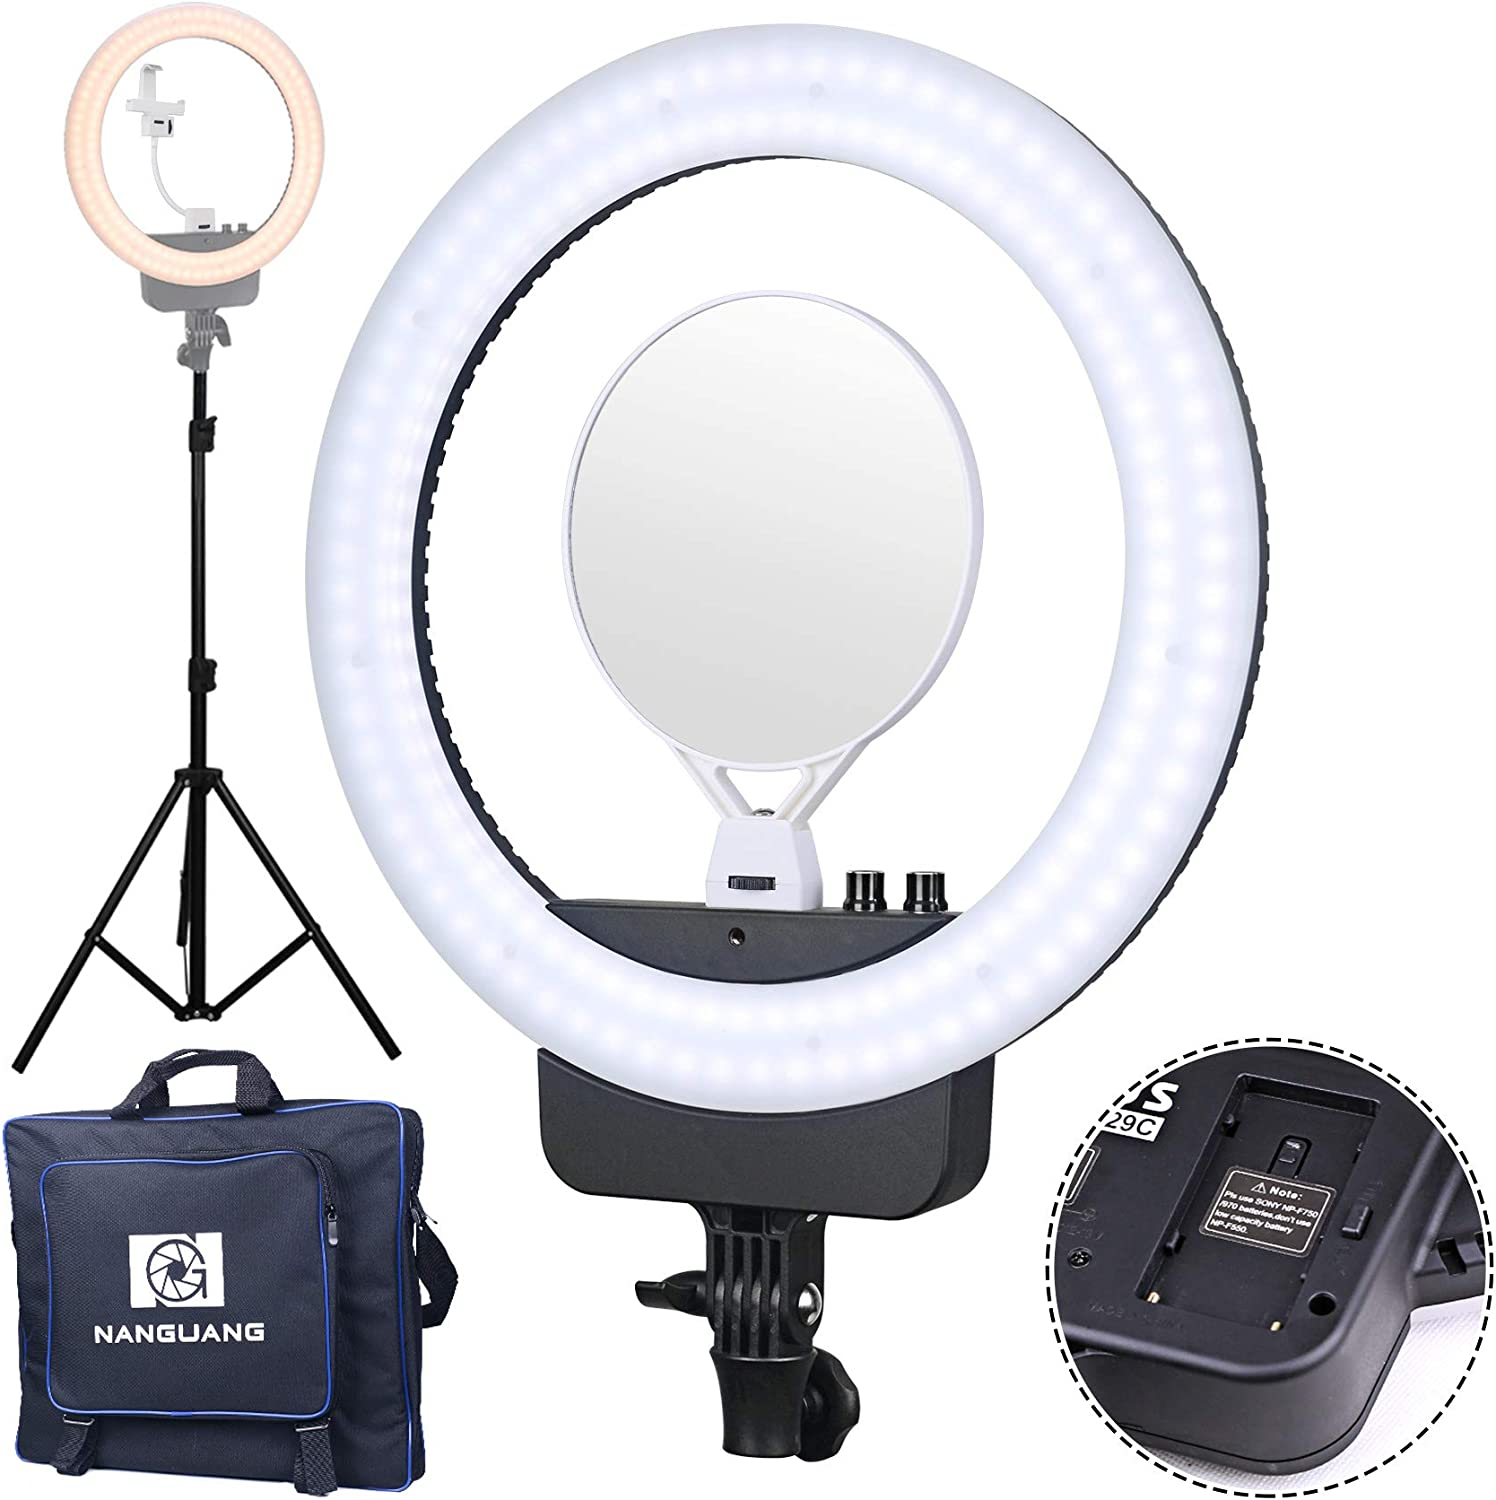 Battery Not Included NanGuang V29C 16 Bicolor LED AC//Battery Ring Light Kit with USB Power Passthrough